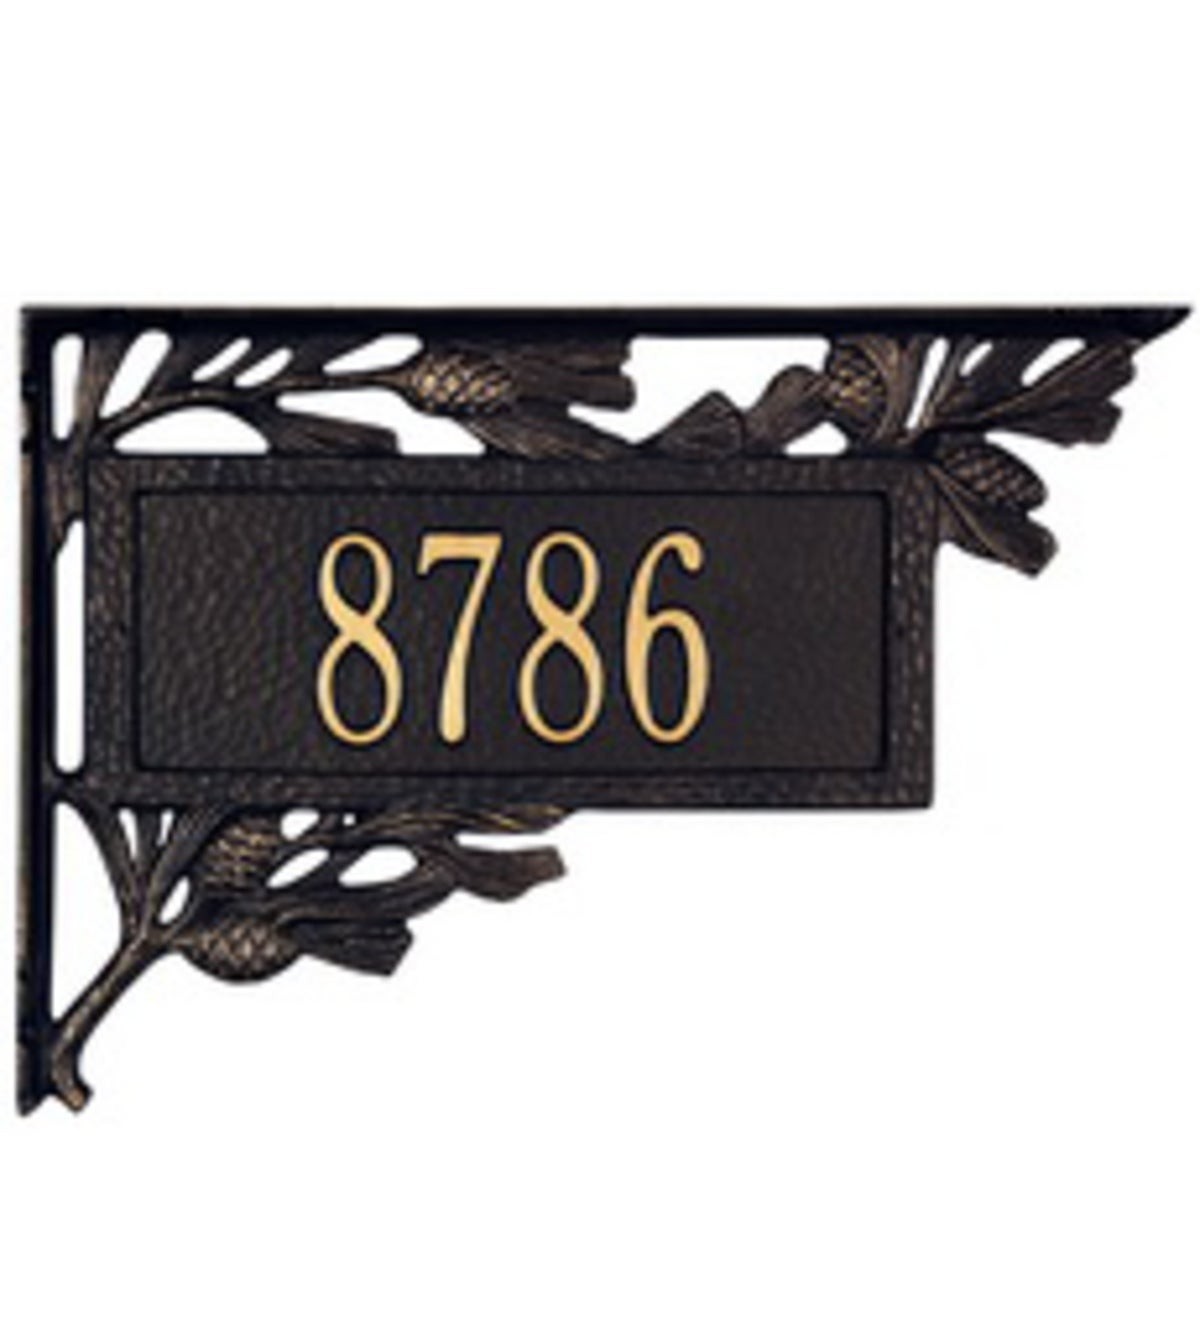 American-Made Personalized Pine Cone 2-Sided Mailbox Address Marker In Cast Aluminum - Black